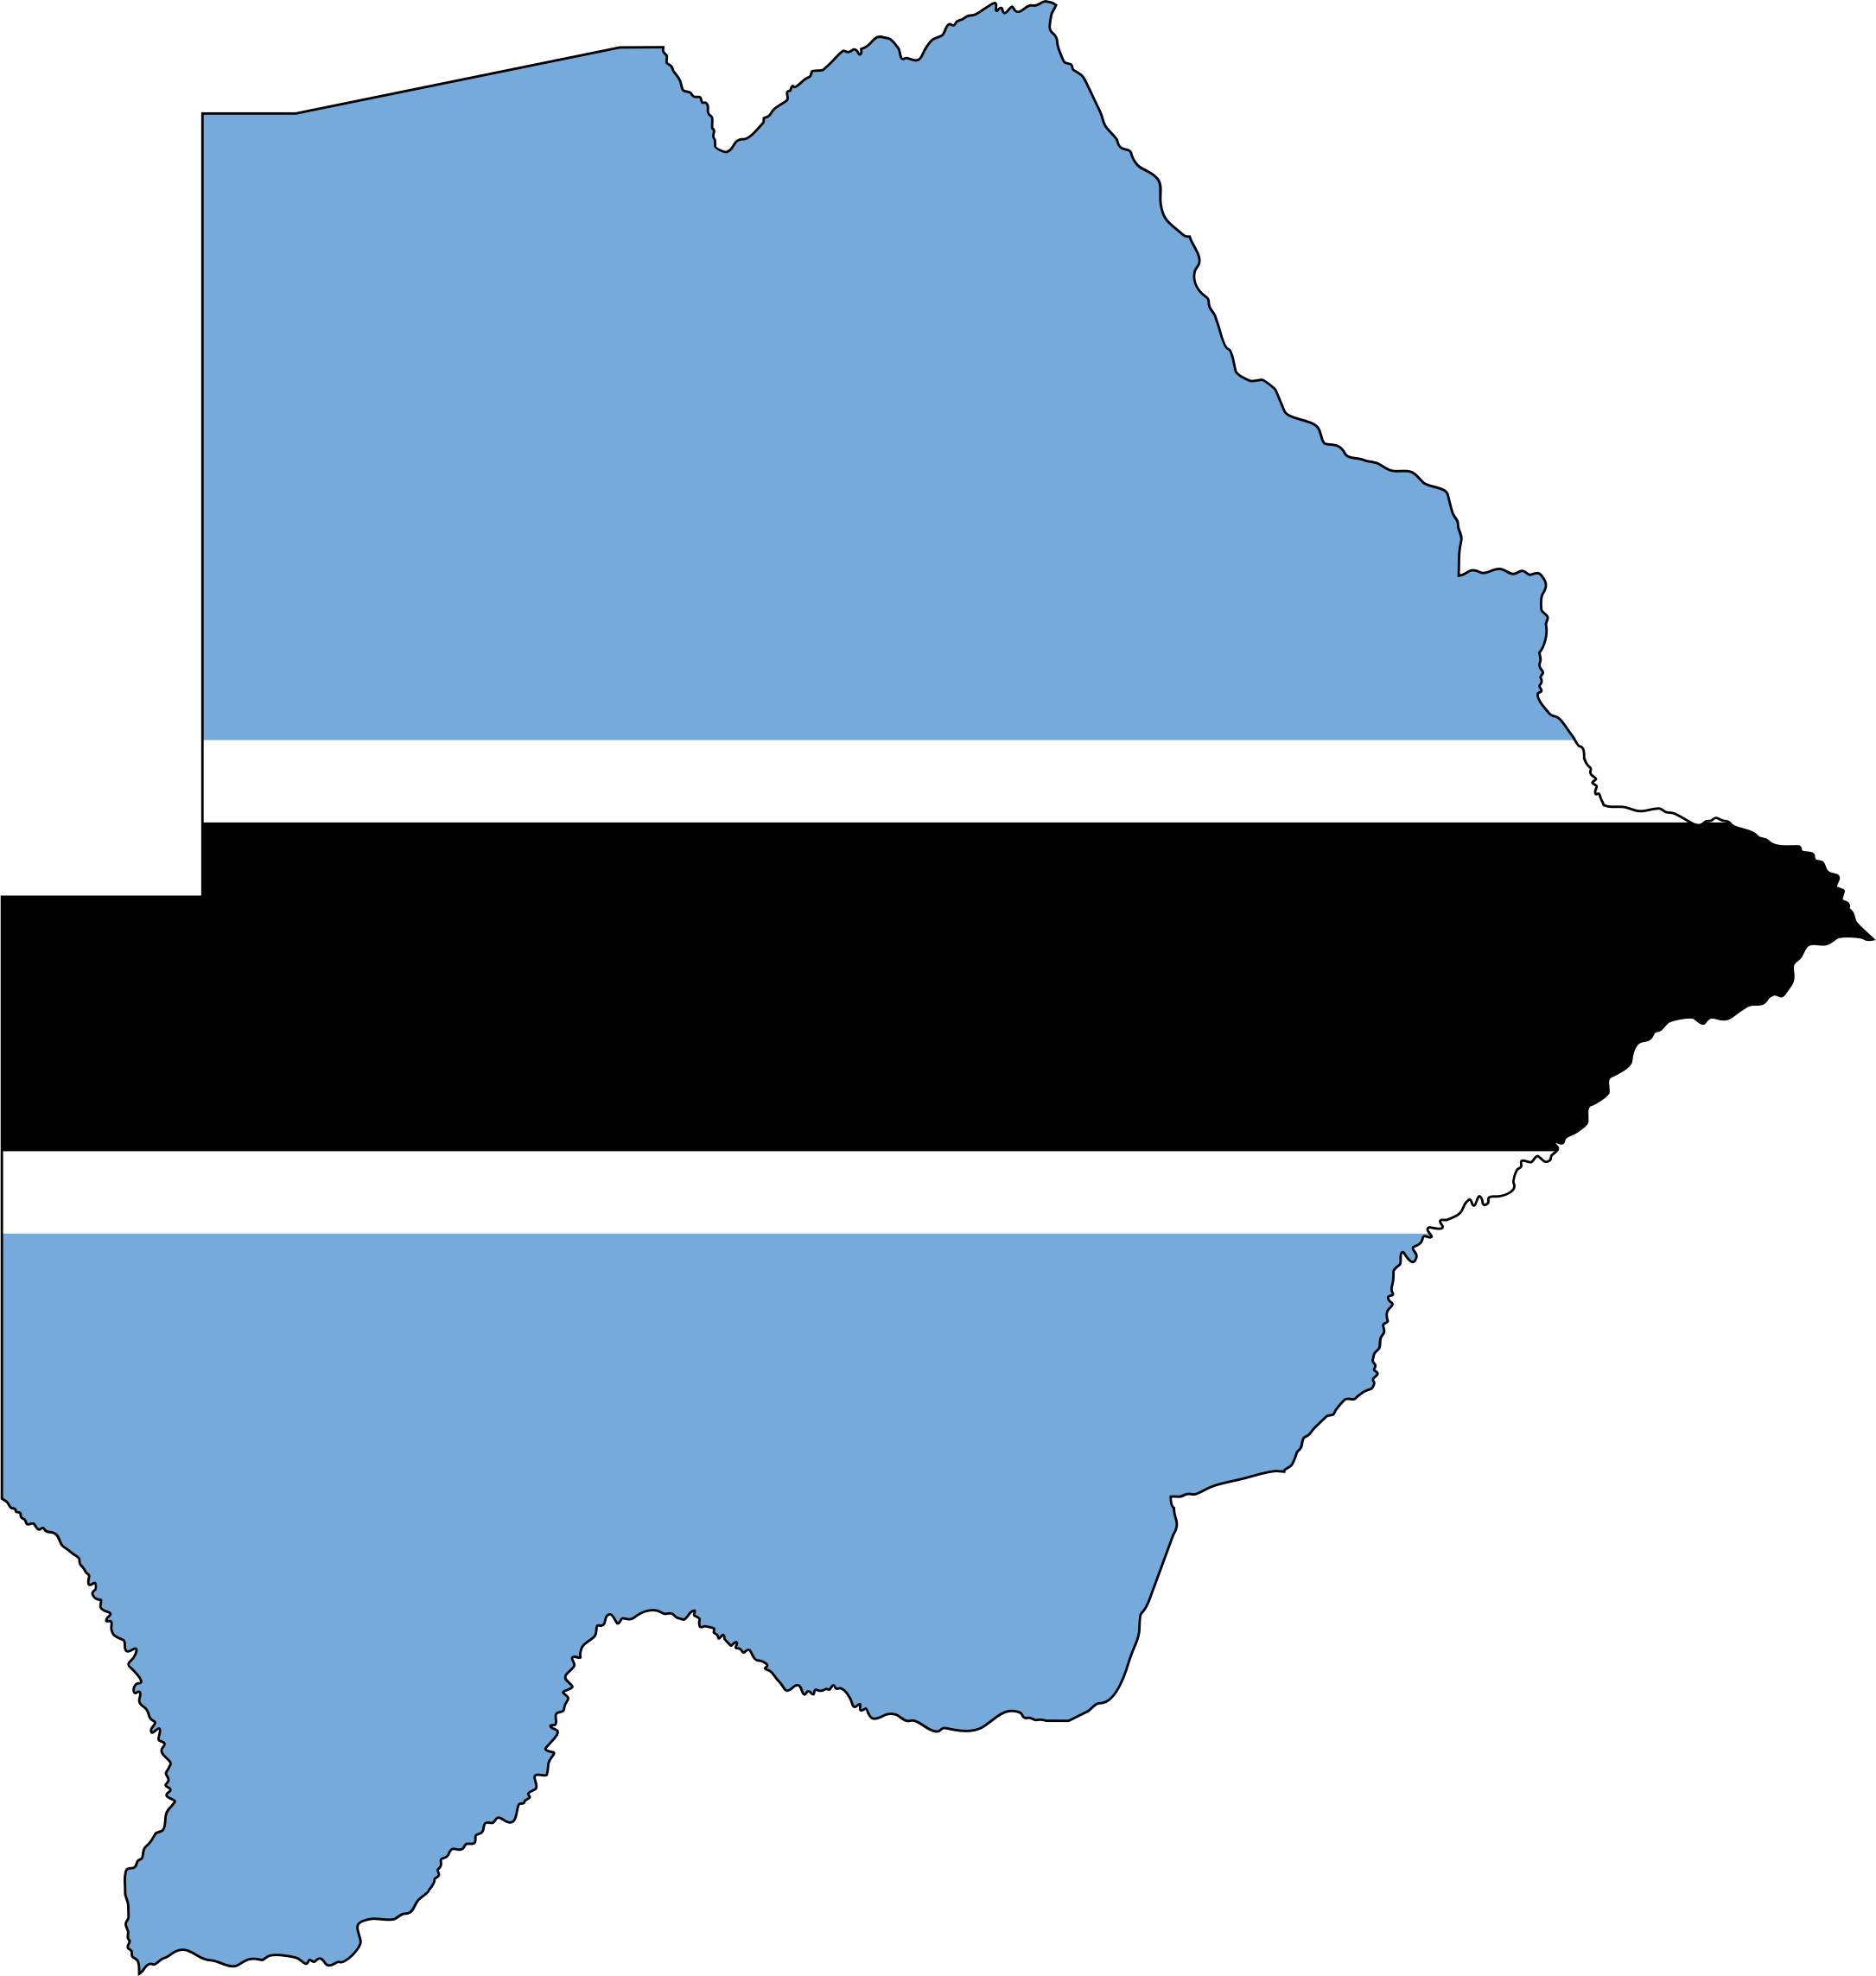 Botswana Flag Map With Stroke by GDJ